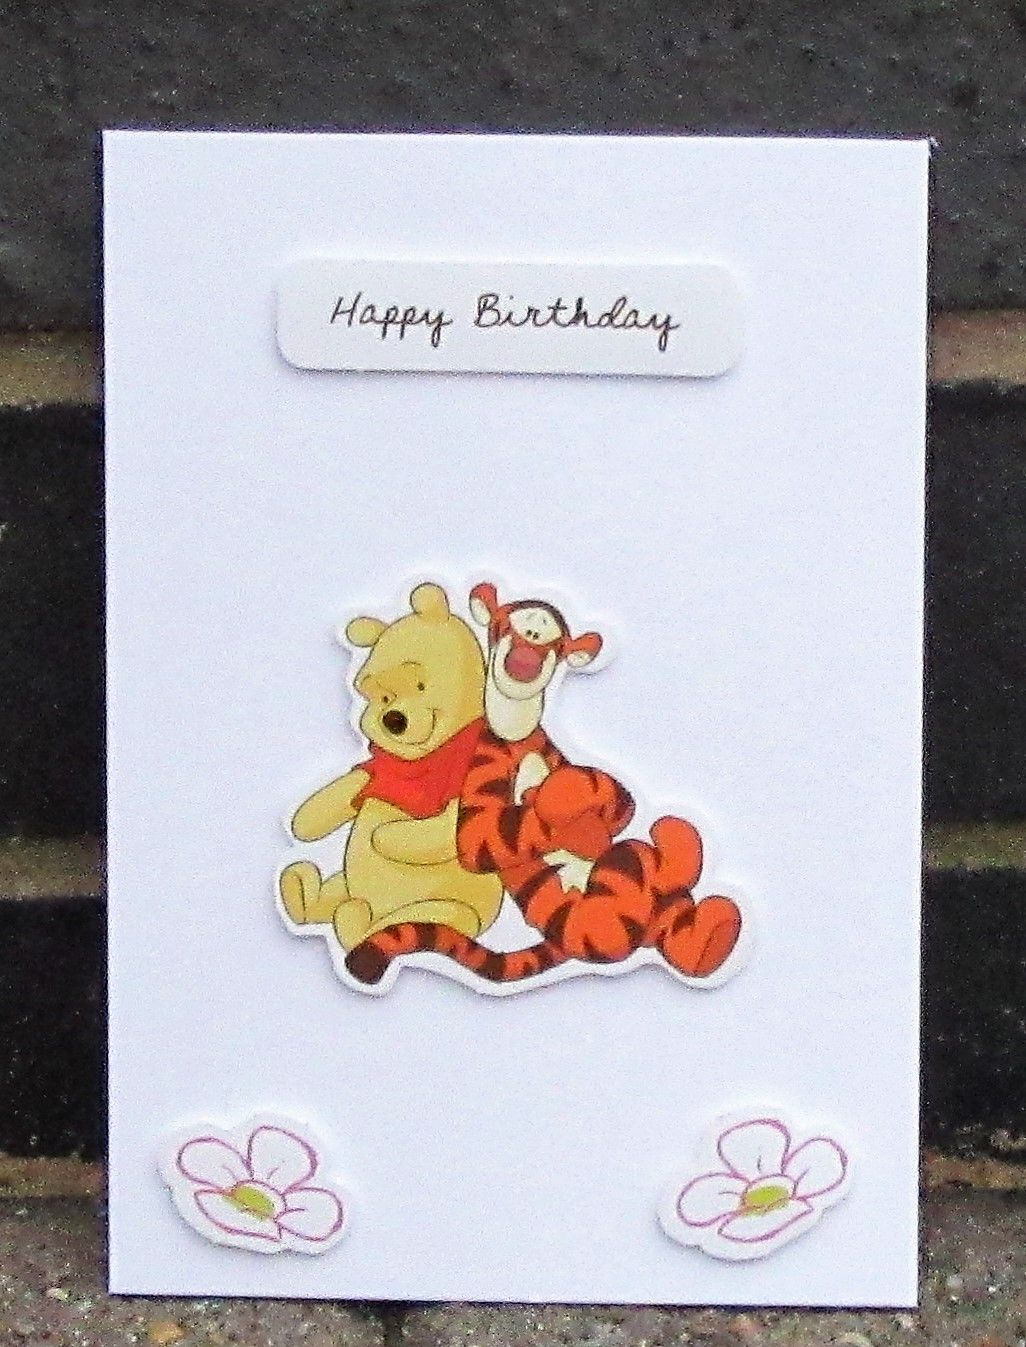 Winnie The Pooh And Tigger Card Don T They Look So Happy Together Like This Have A Look At My Pictures At Https Www Disney Cards Paper Art Scrapbook Cards